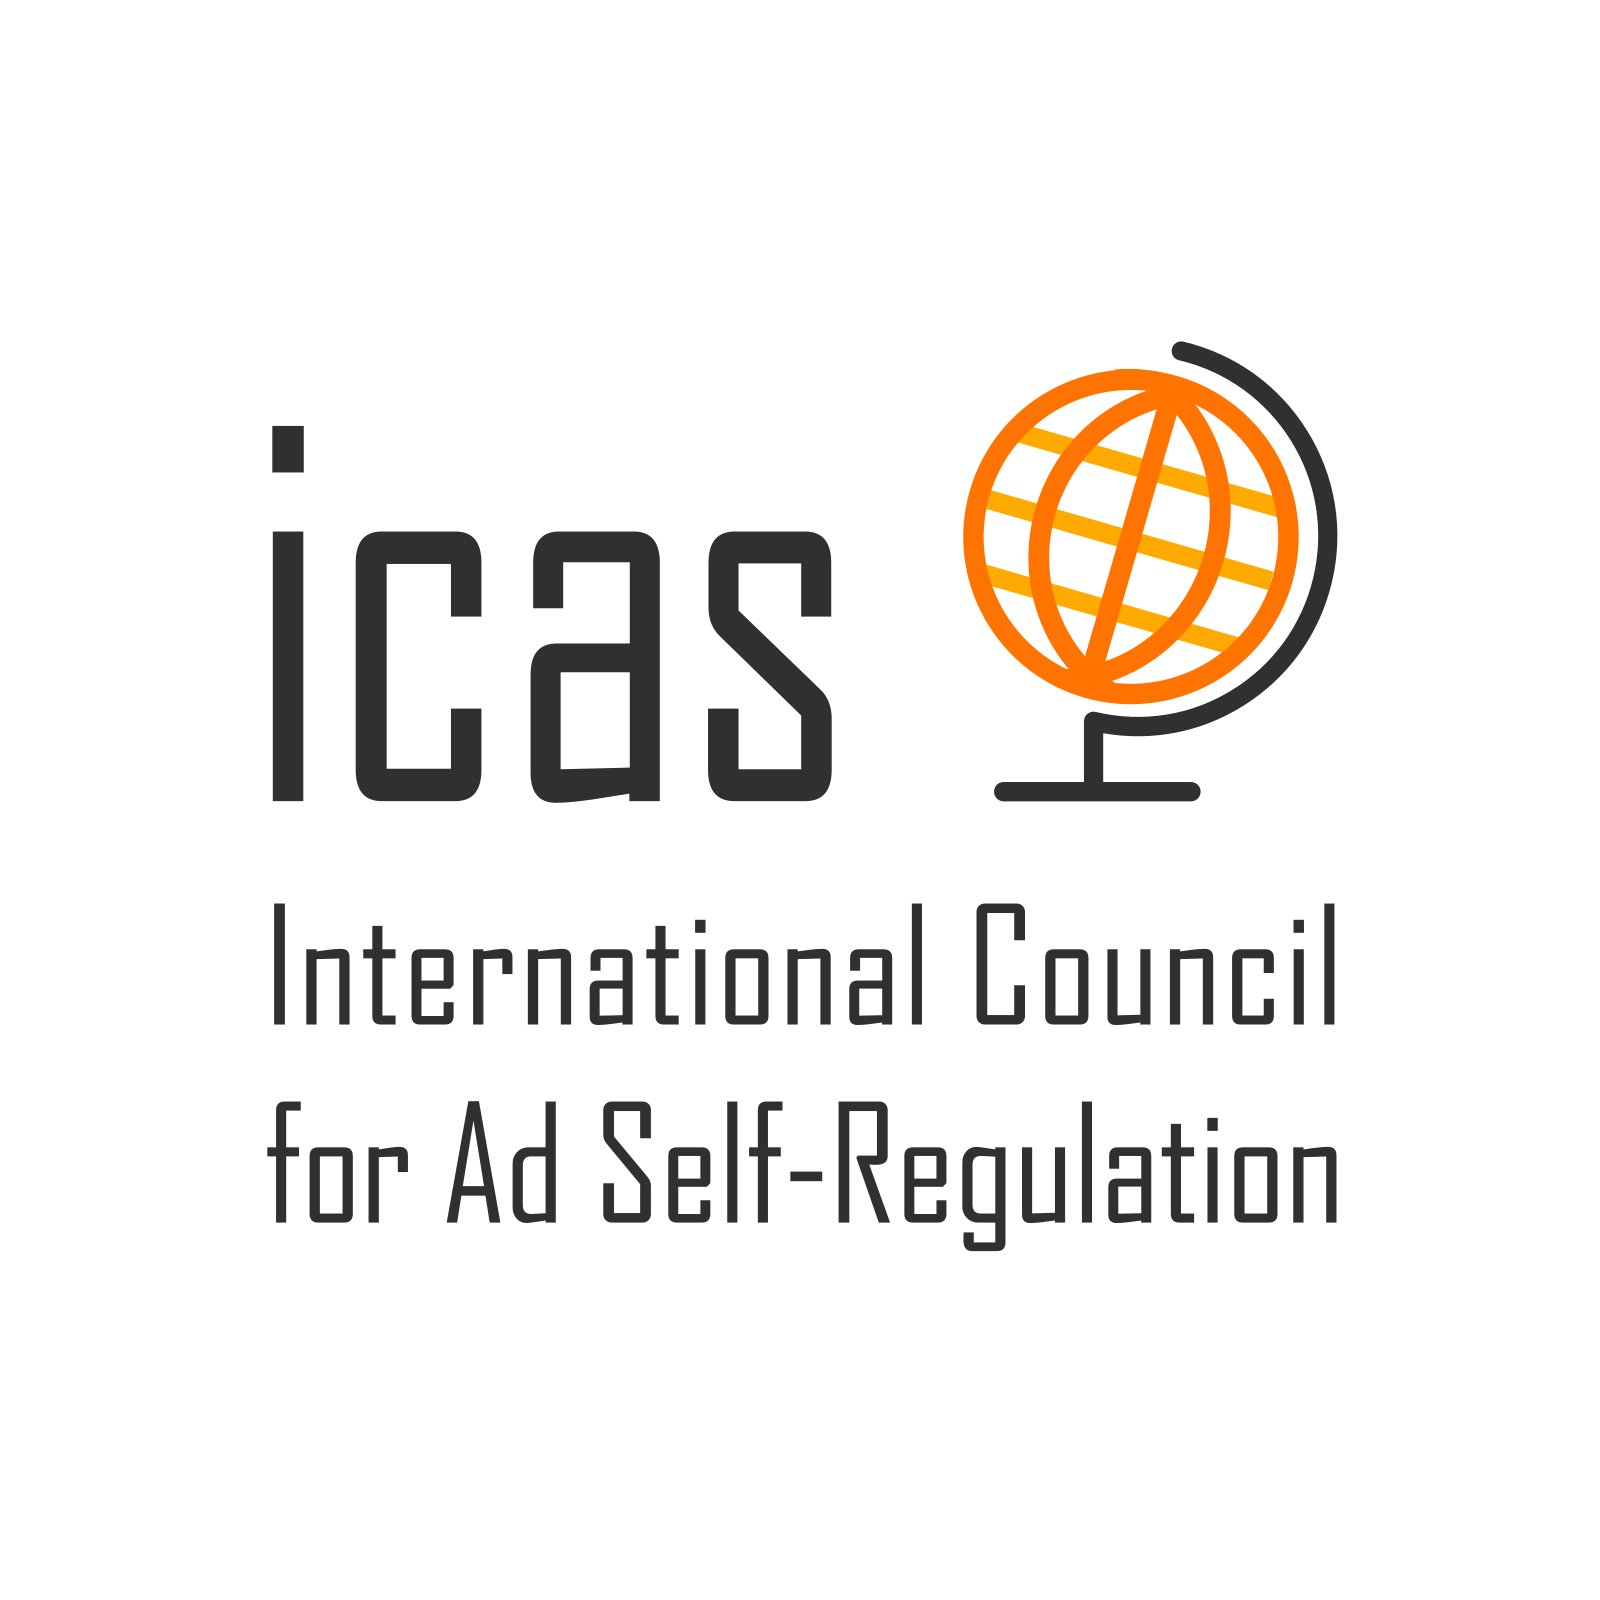 International Council for Ad Self-Regulation (ICAS)